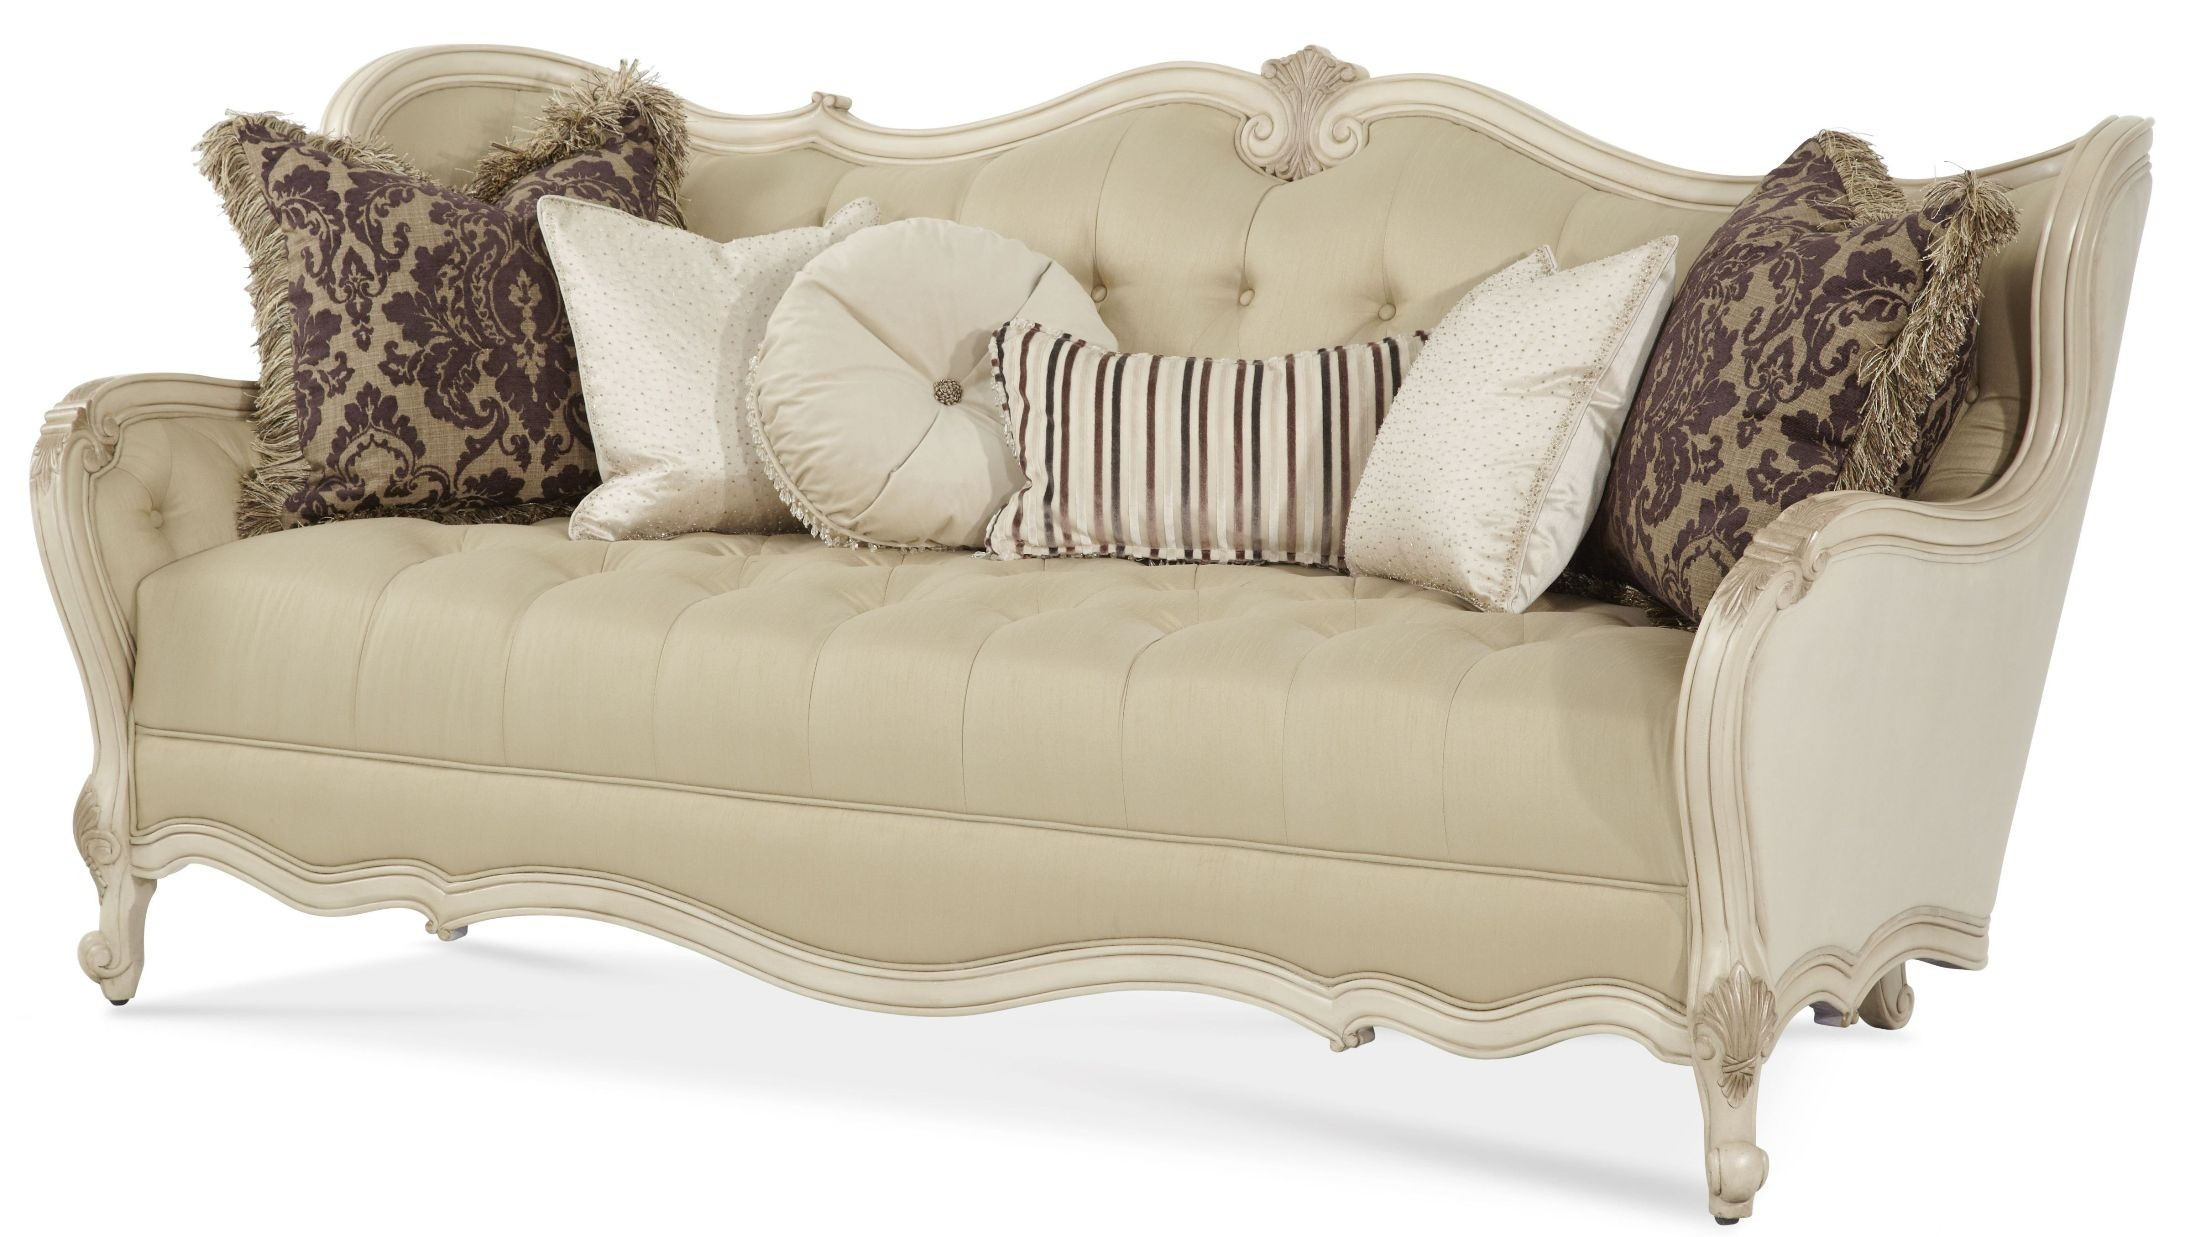 Lavelle blanc wood trim tufted sofa from aico chpgn